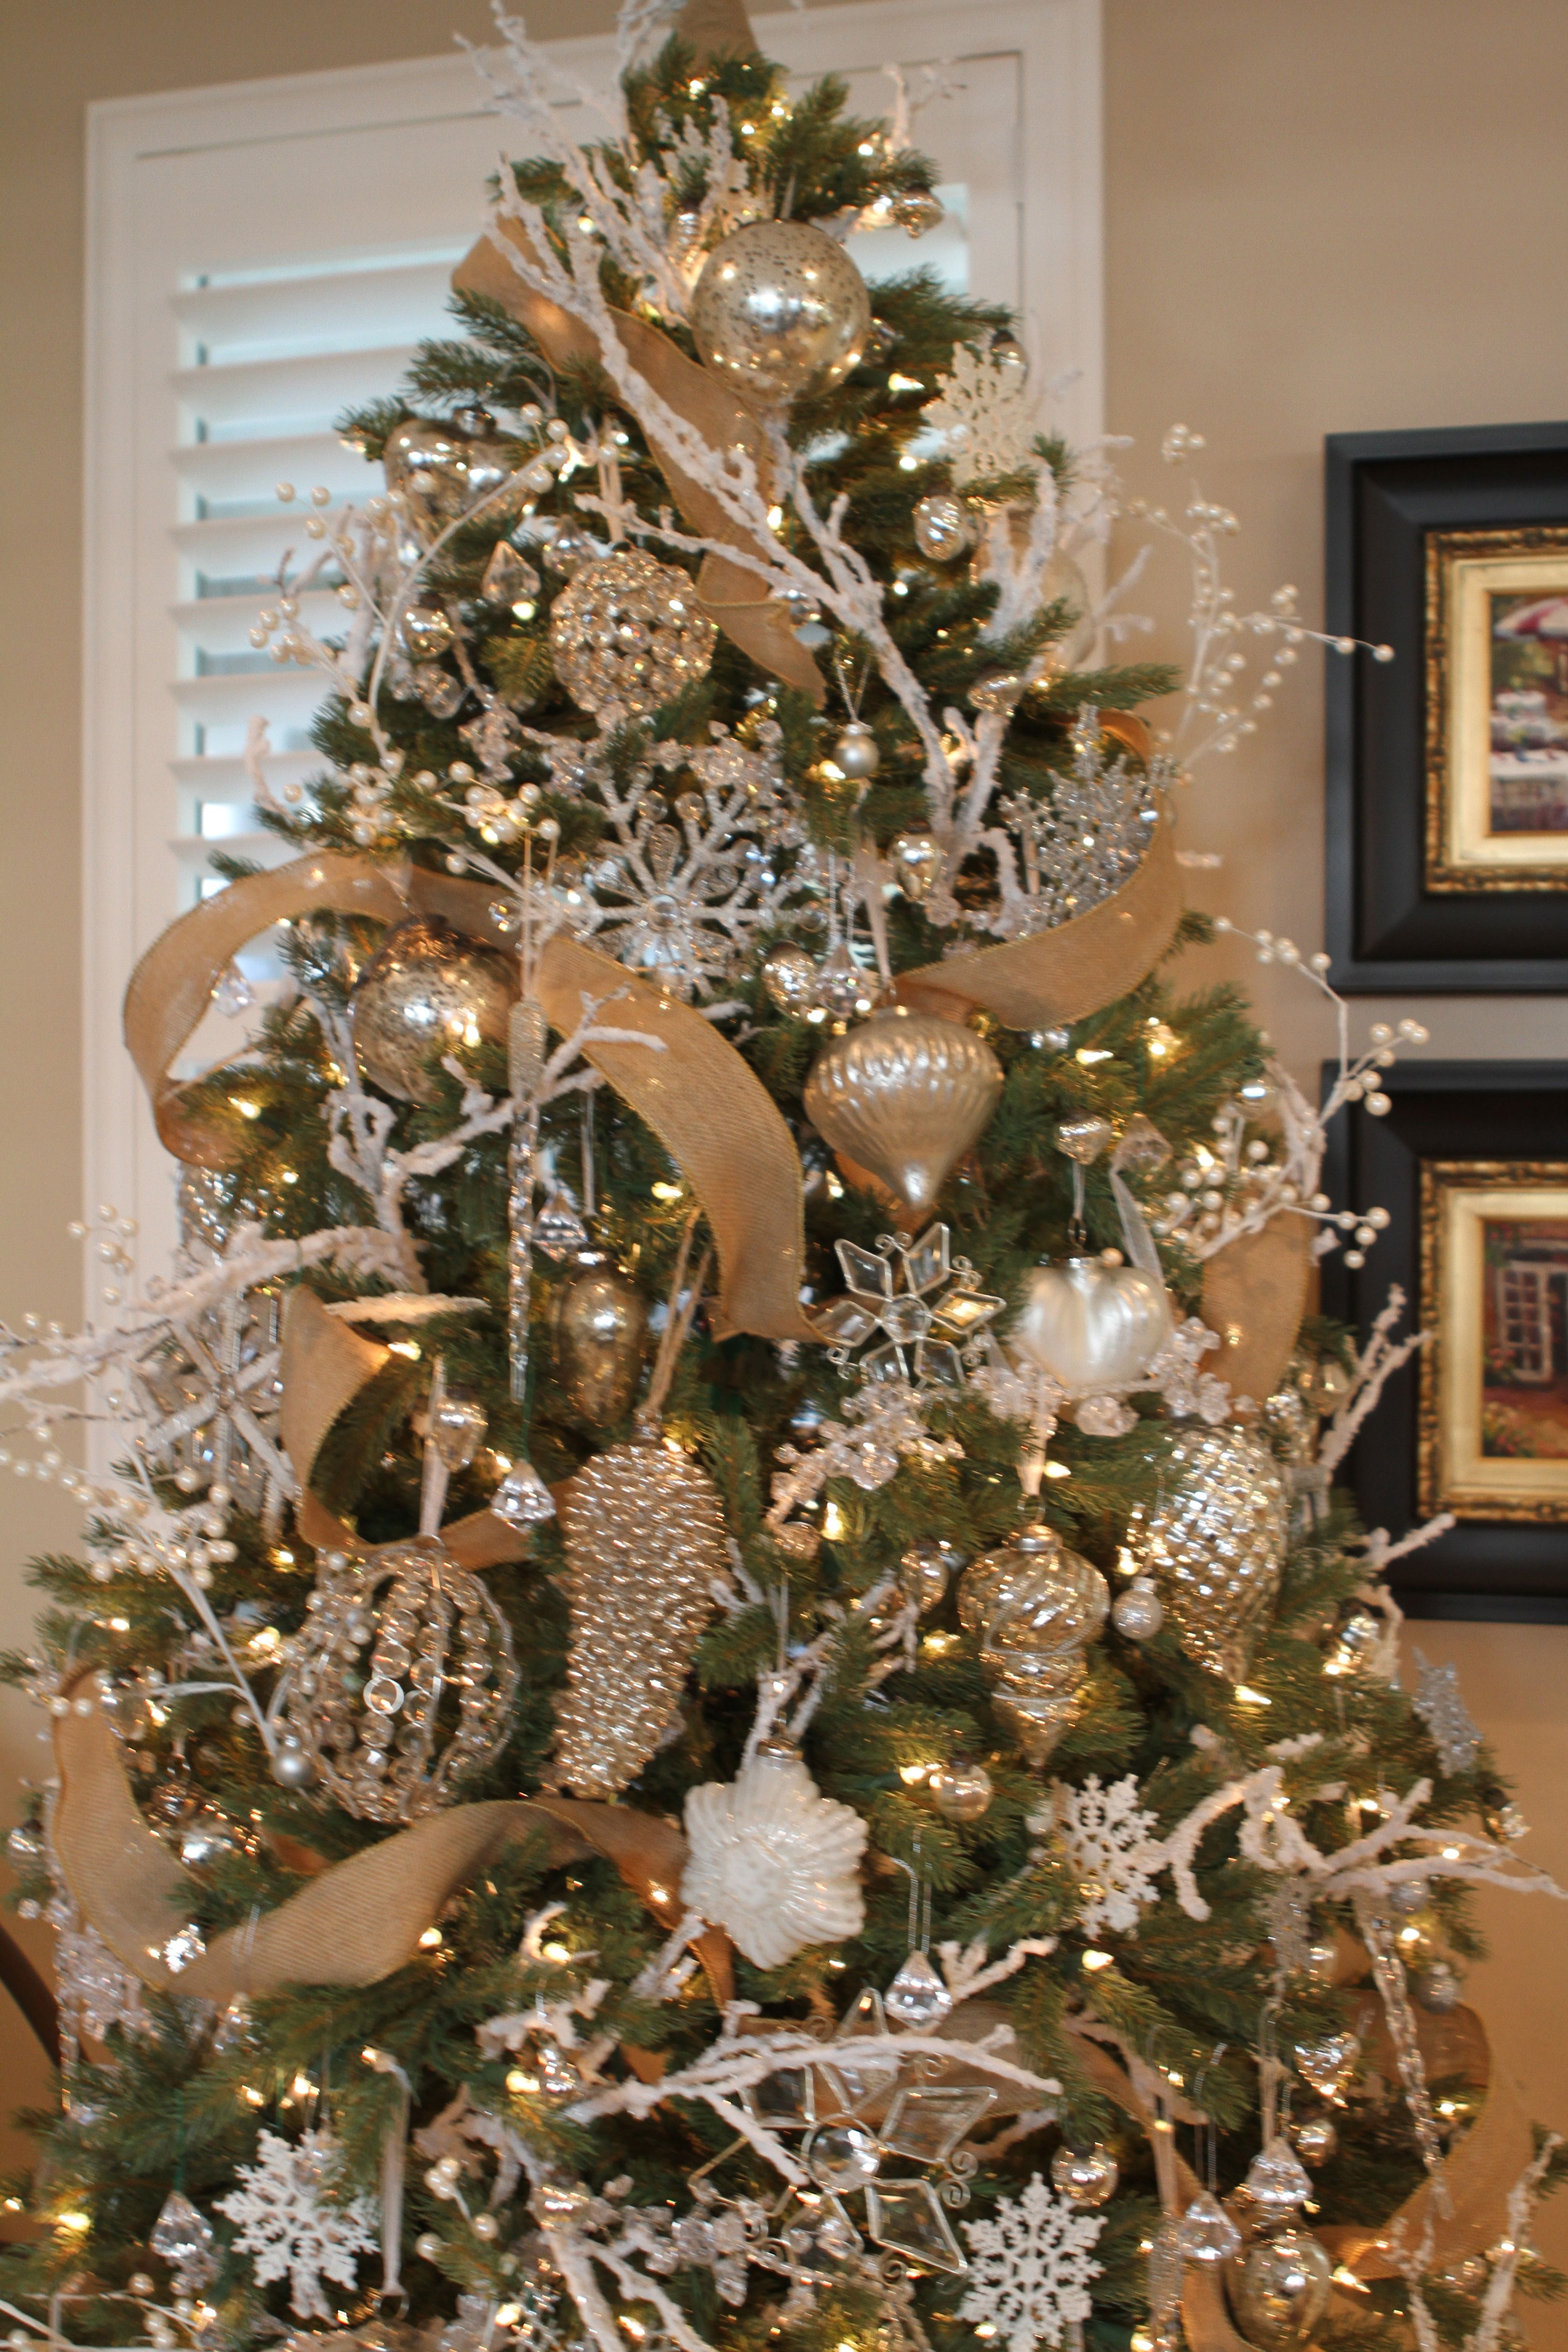 Christmas Tree With A Touch Of Gold And White Gold Christmas Decorations Gold Christmas Tree Decorations Christmas Tree Design